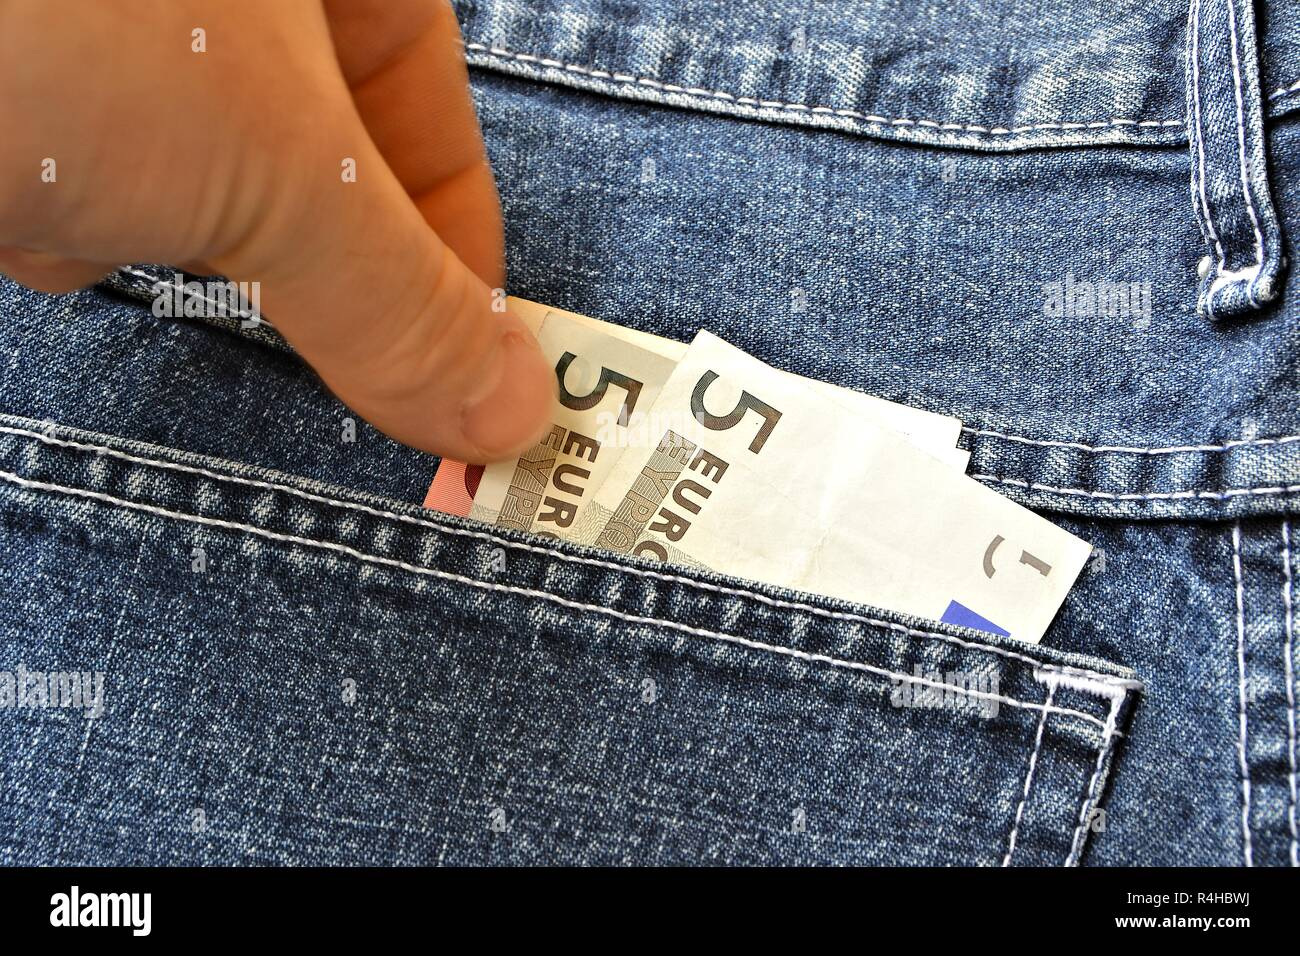 Theft of euro banknotes from a trouser pocket - Stock Image